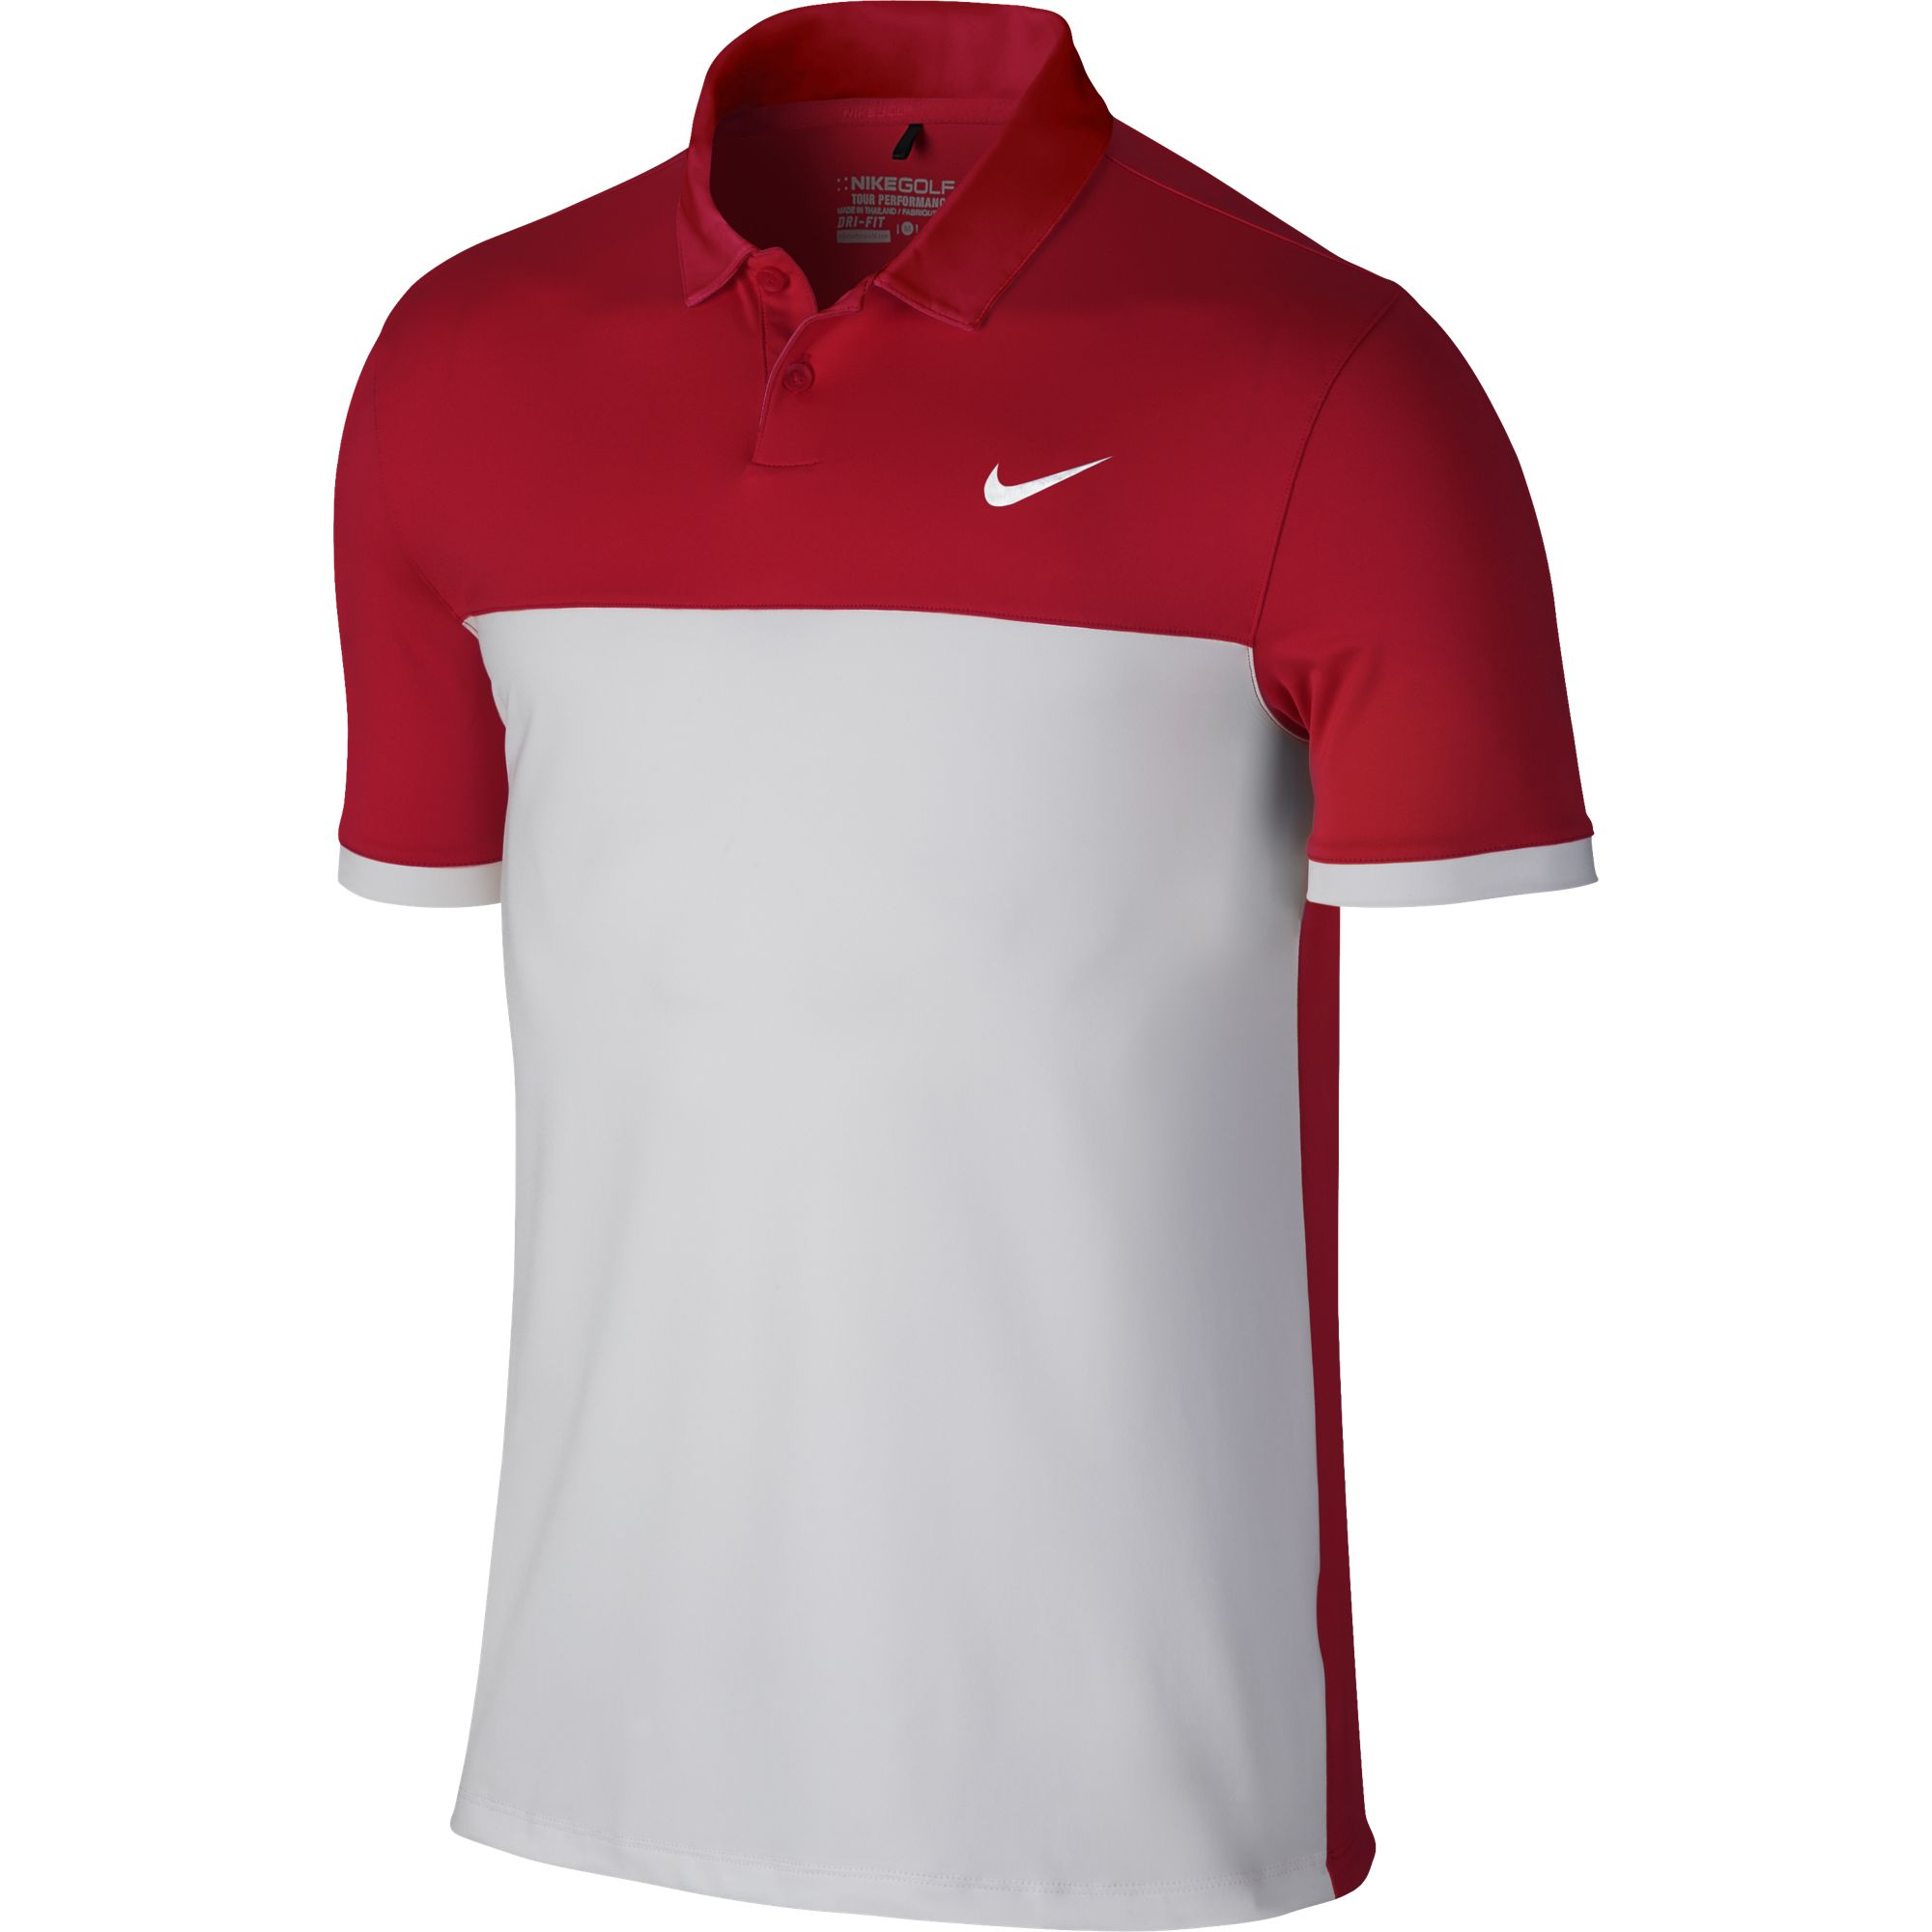 2016 nike icon color block polo golf shirt 725527 pick for Polo color block shirt